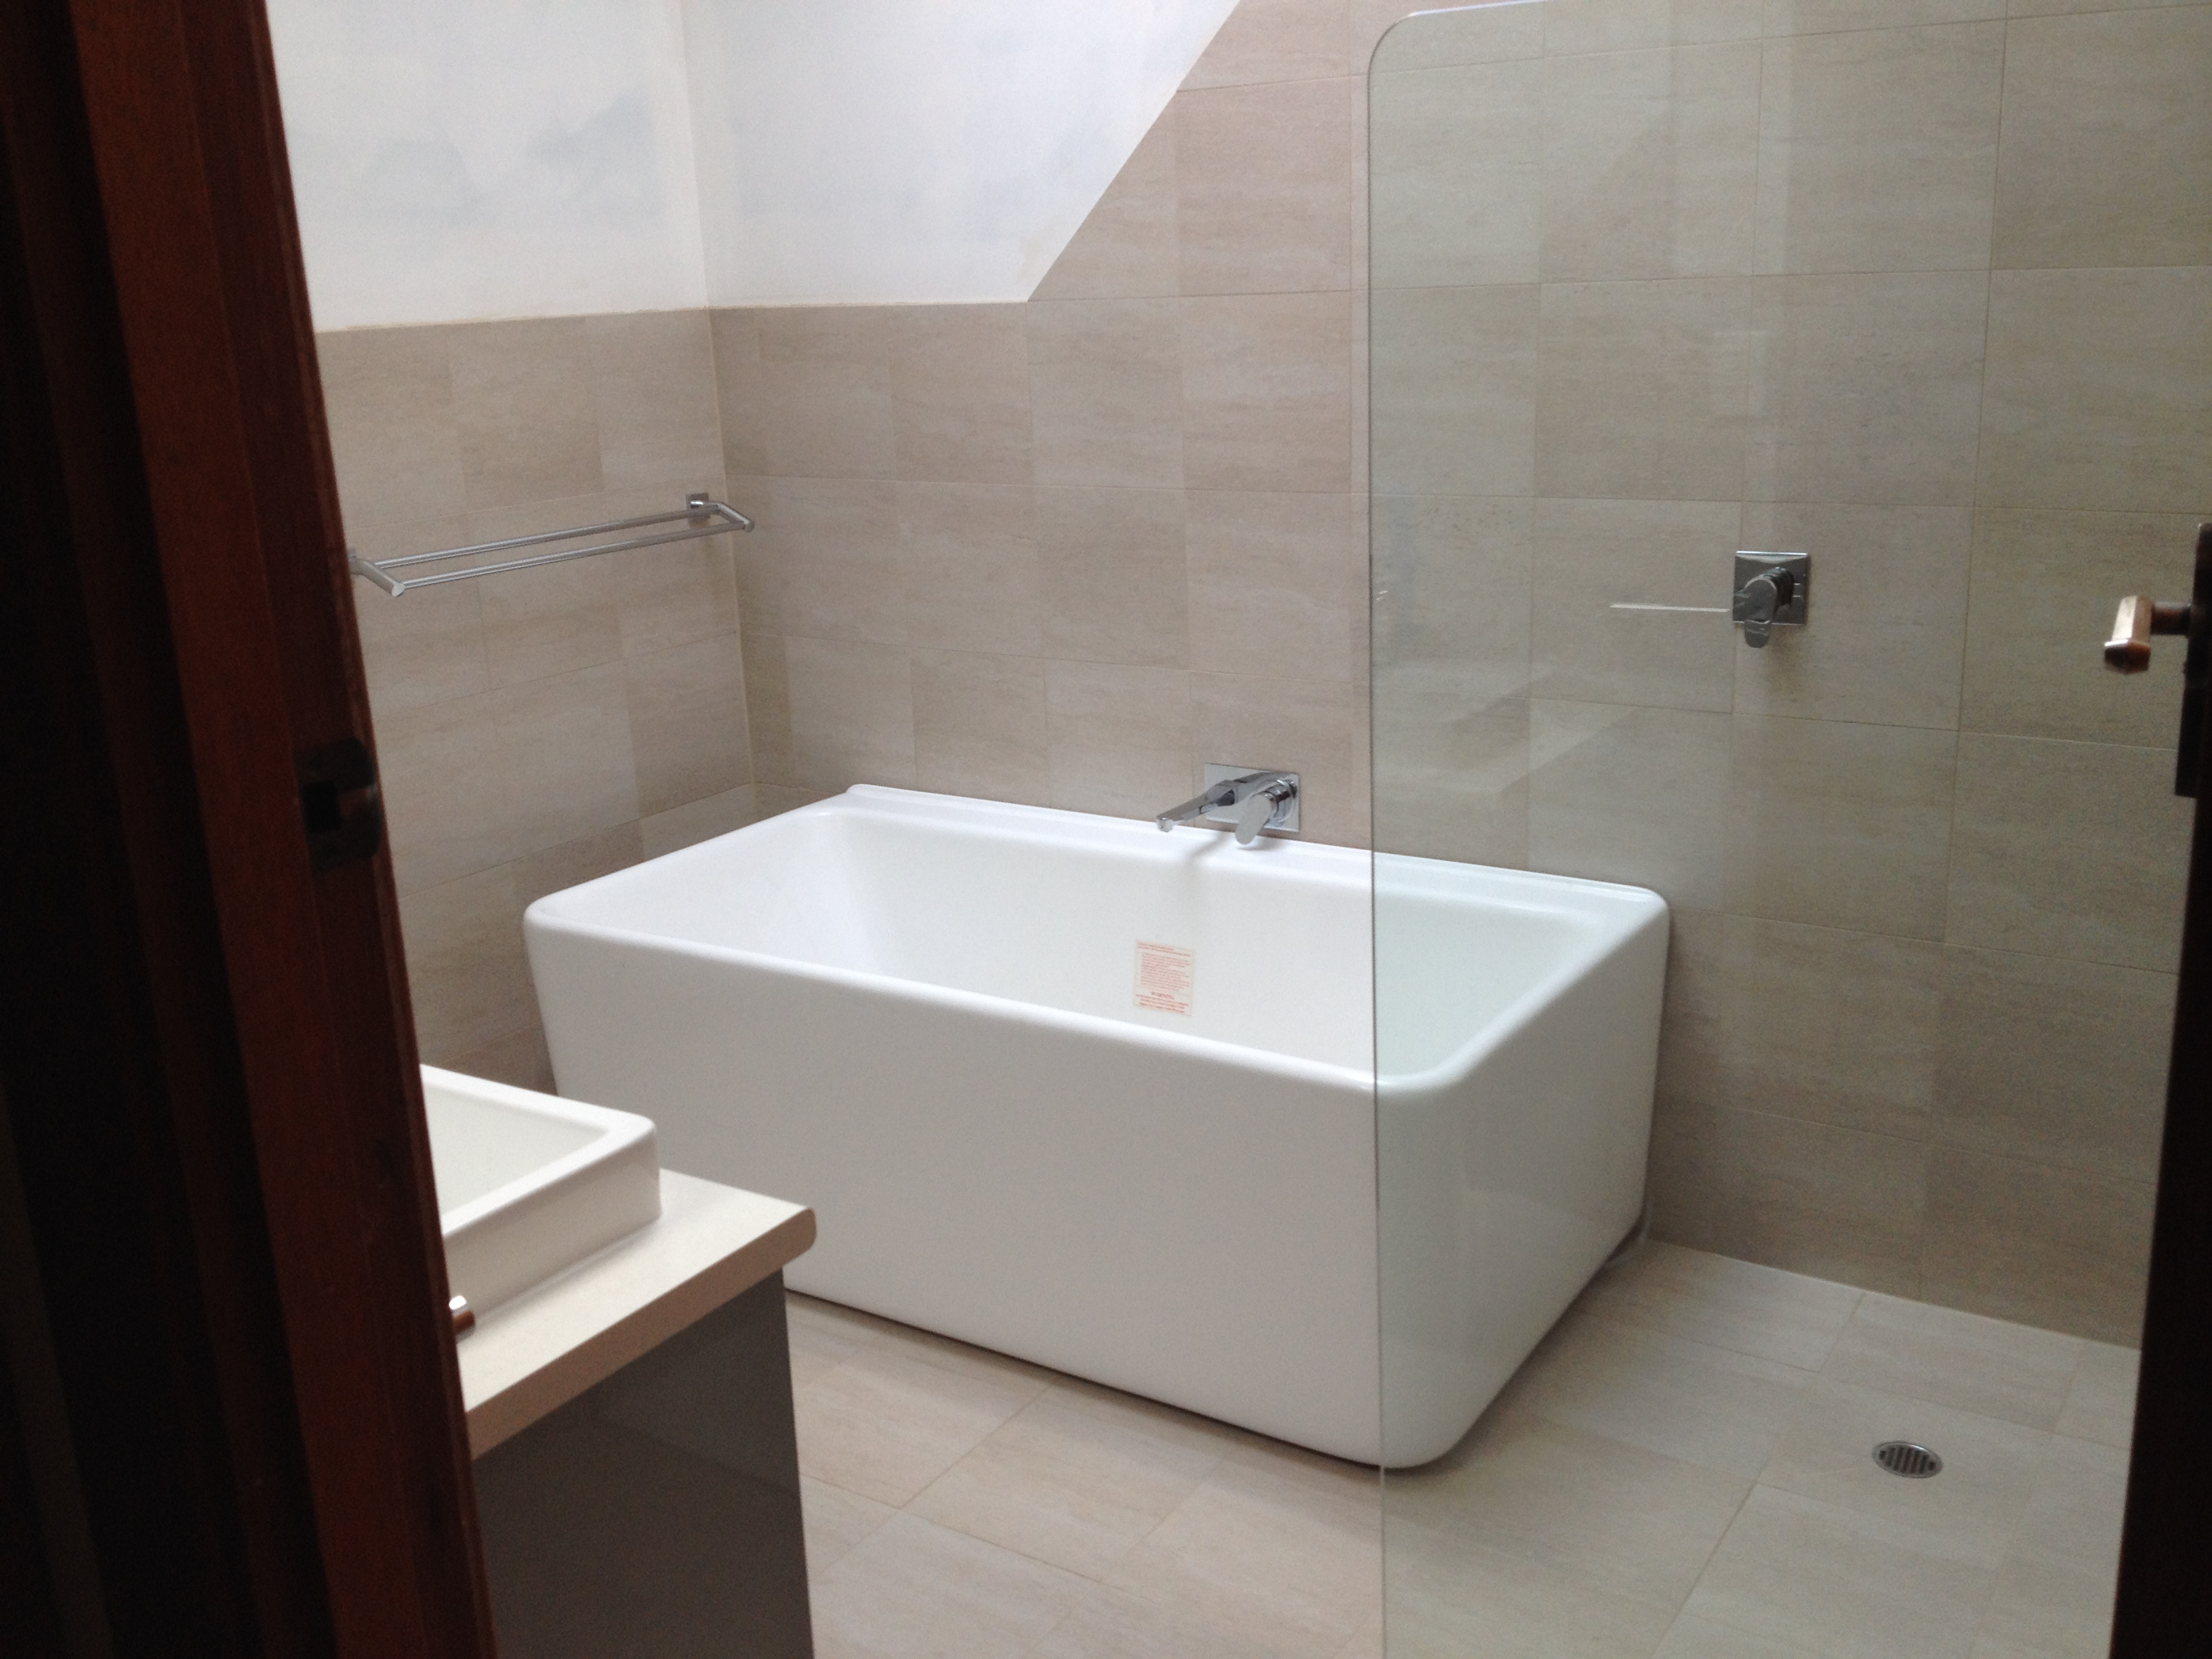 Frameless shower screen and free standing bath